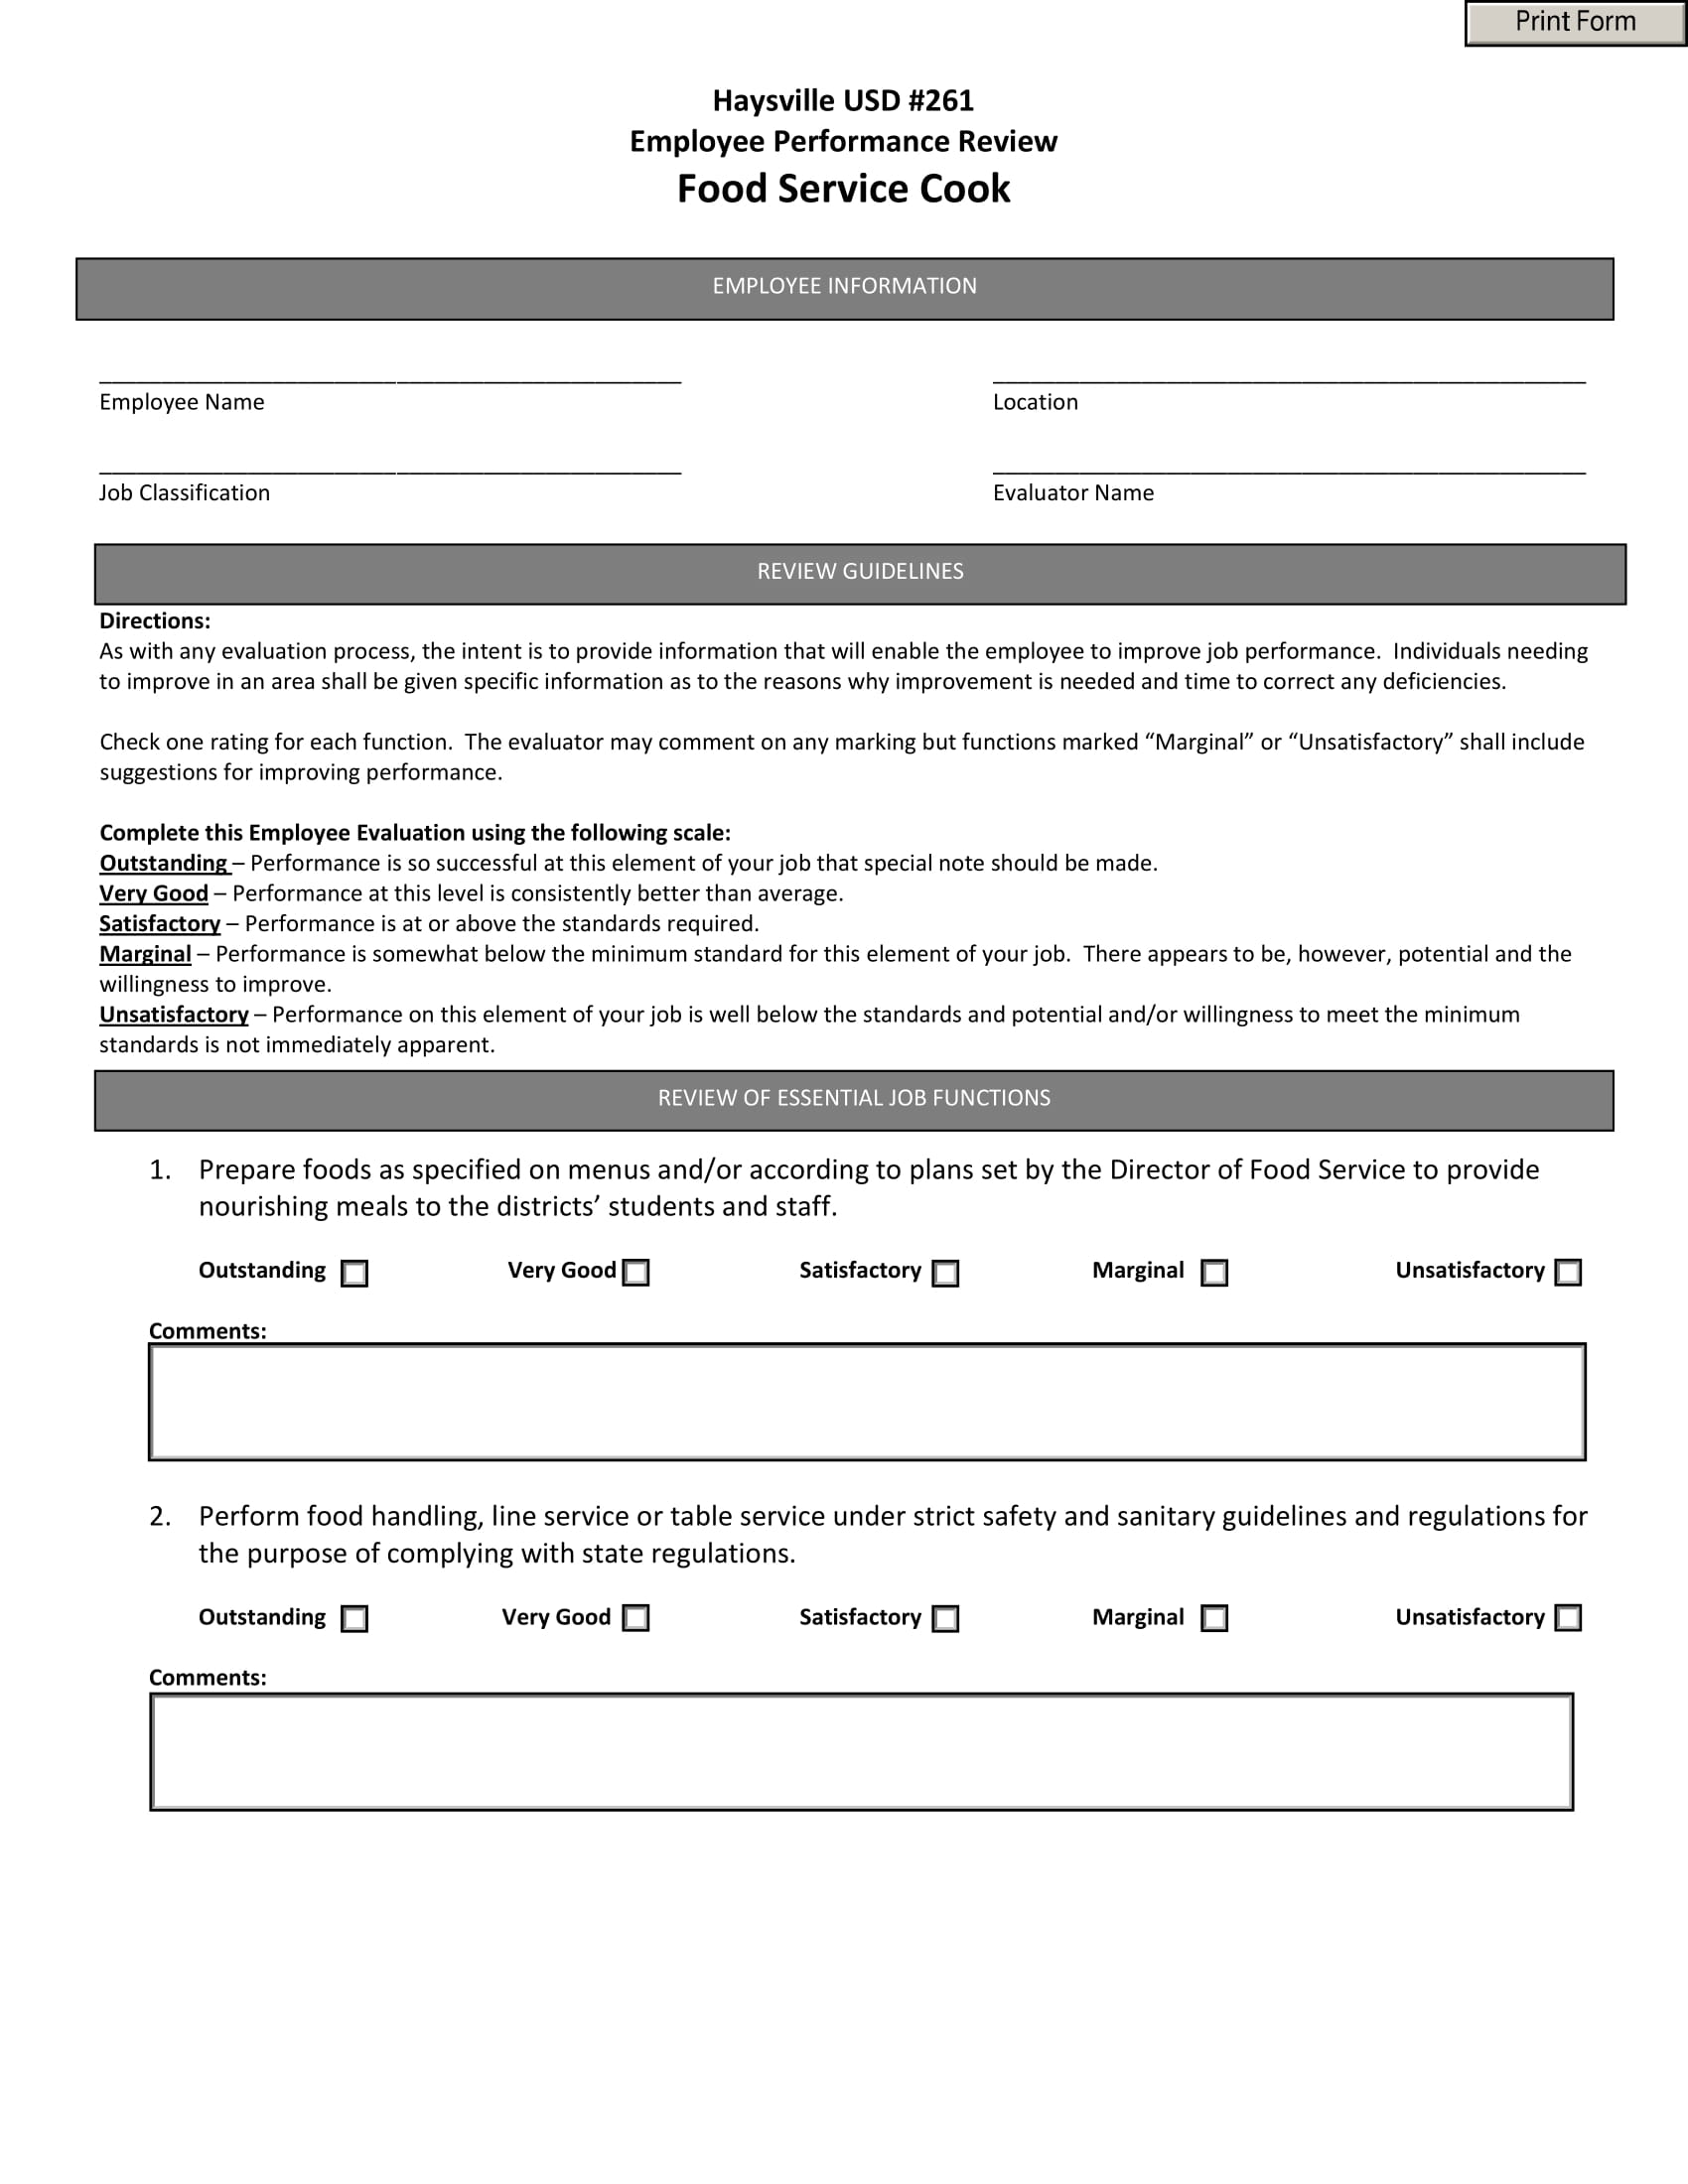 food service cook performance evaluation form 11